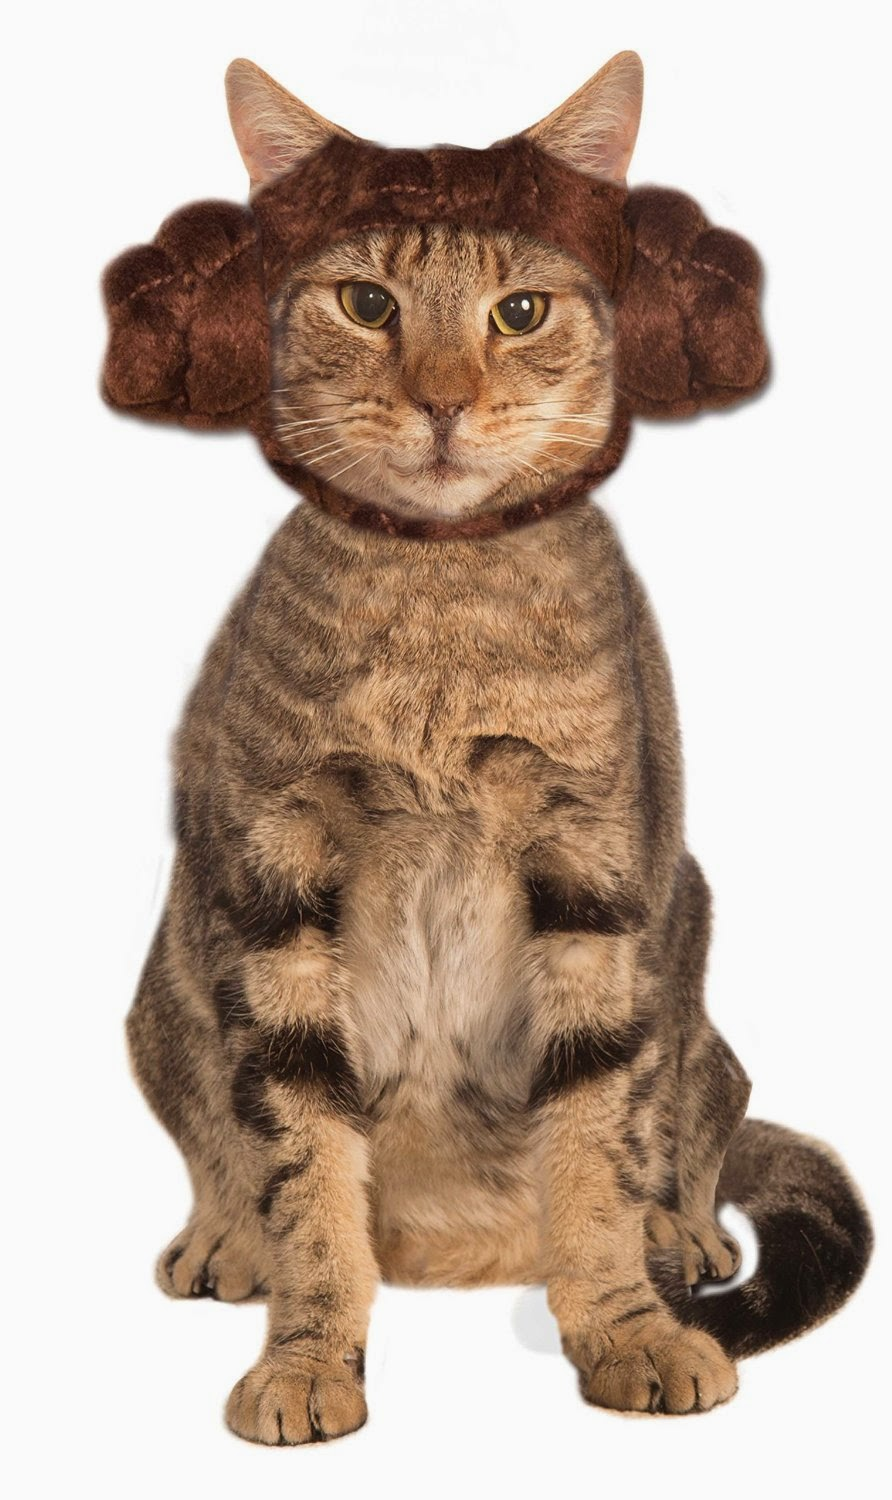 Halloween Costumes for Cats - Star Wars Classic Leia Cat Buns Headpiece